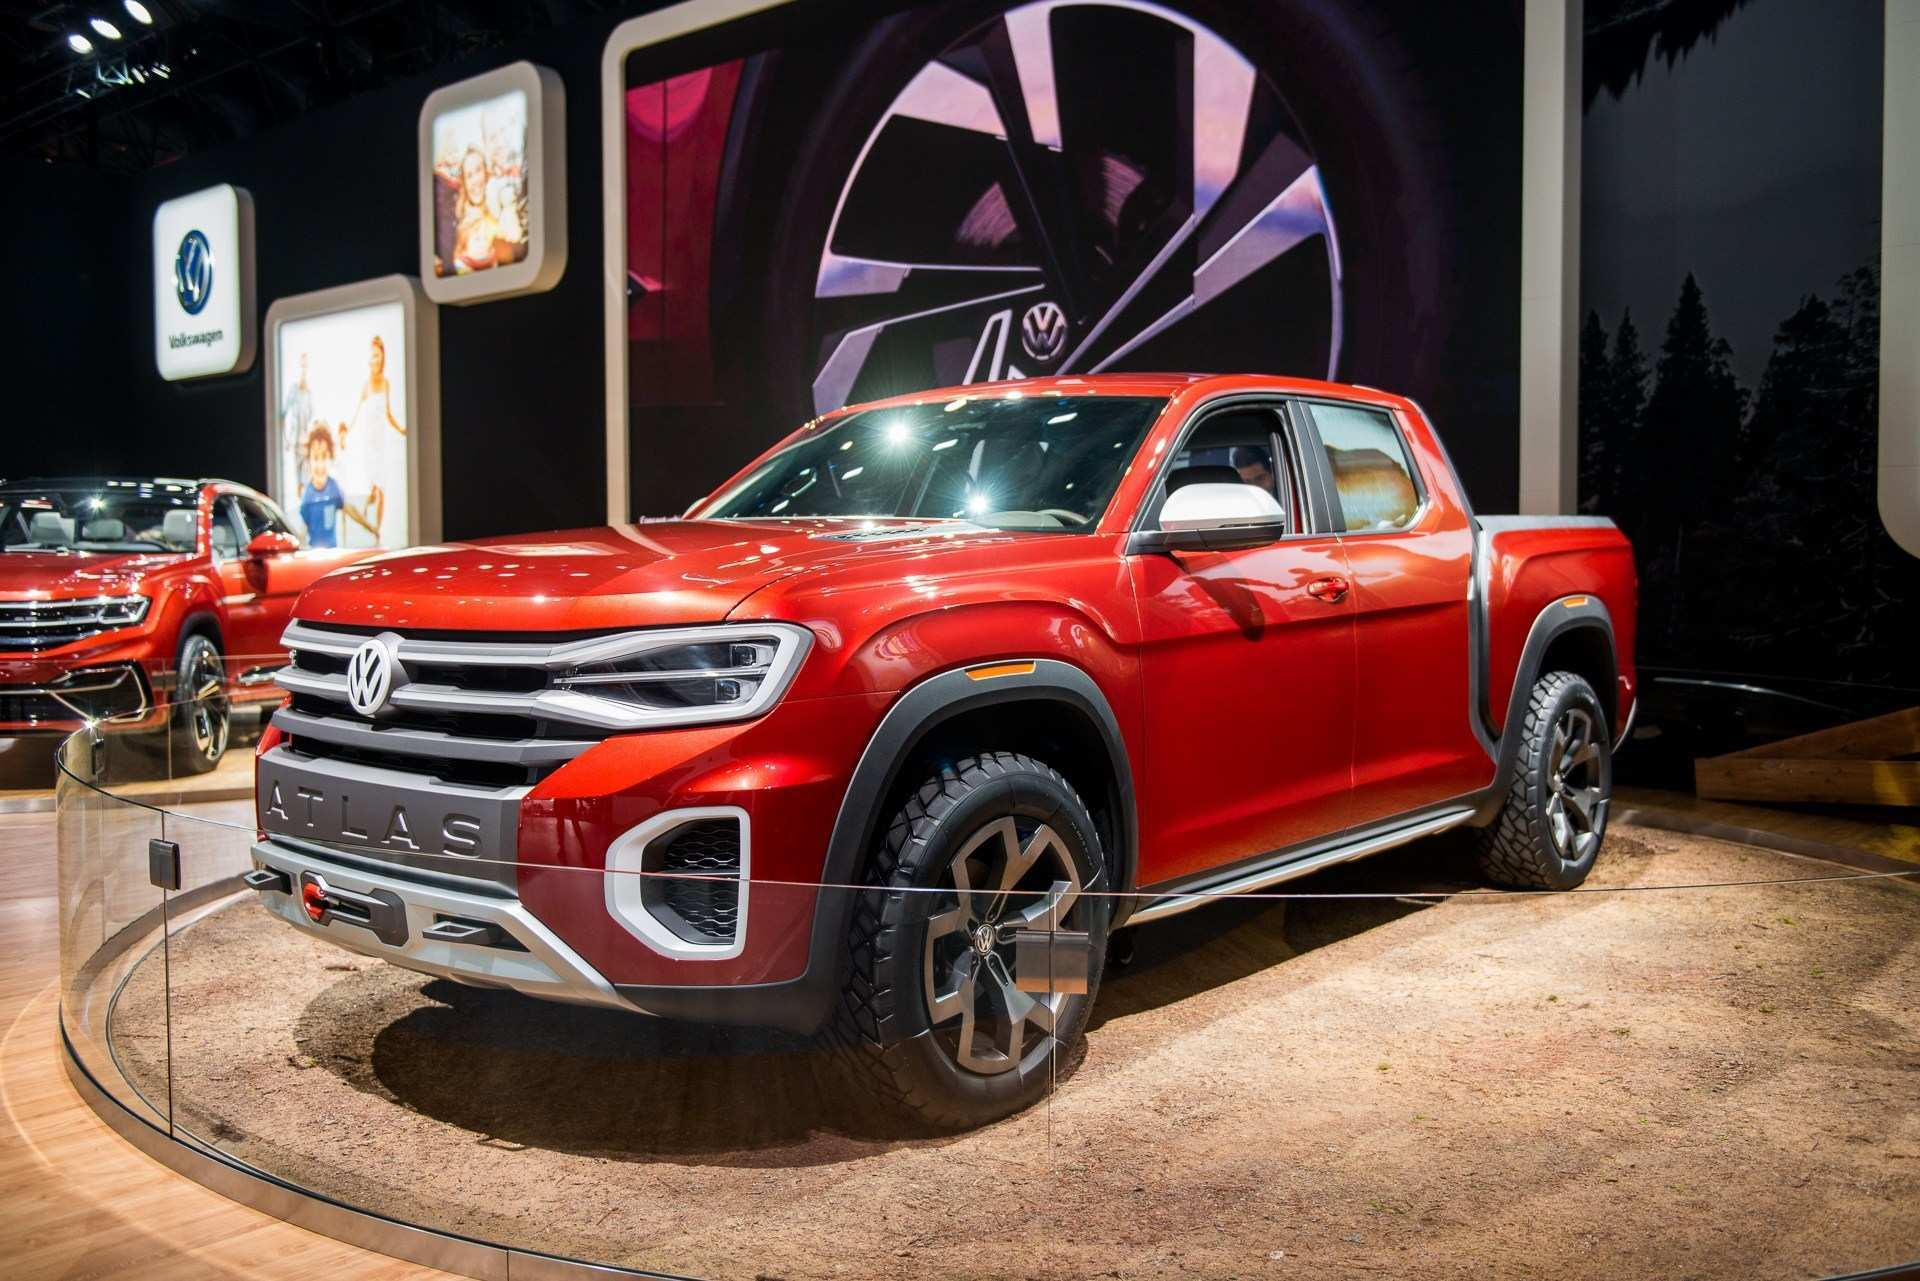 13 New New Volkswagen Amarok 2020 New Review with New Volkswagen Amarok 2020